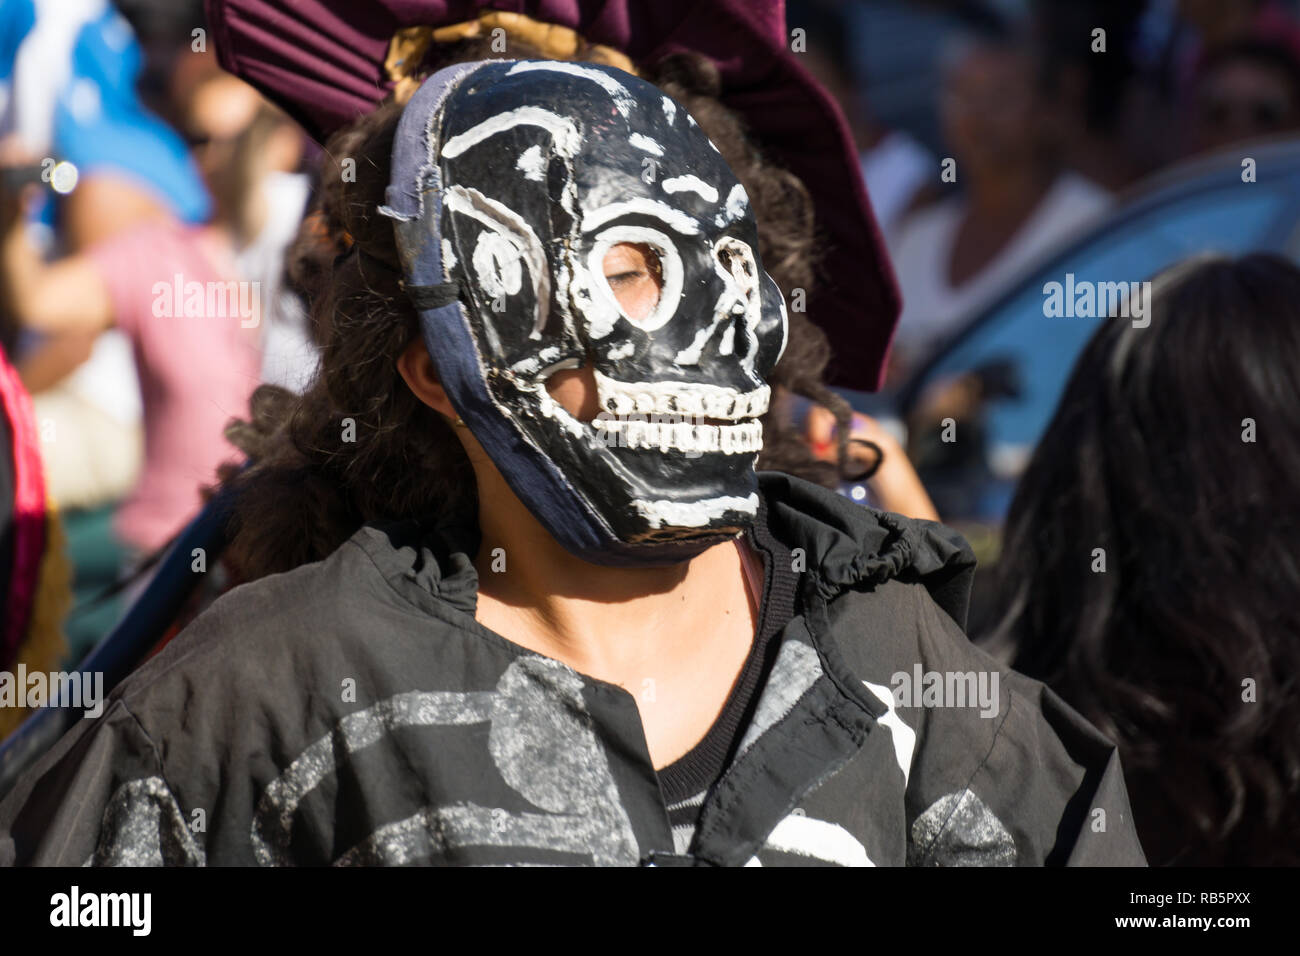 Granada, Nicaragua – February 15, 2017:  People wearing traditional dress and colorful masks during celebration of Carnival. Nicaragua traditional fol - Stock Image